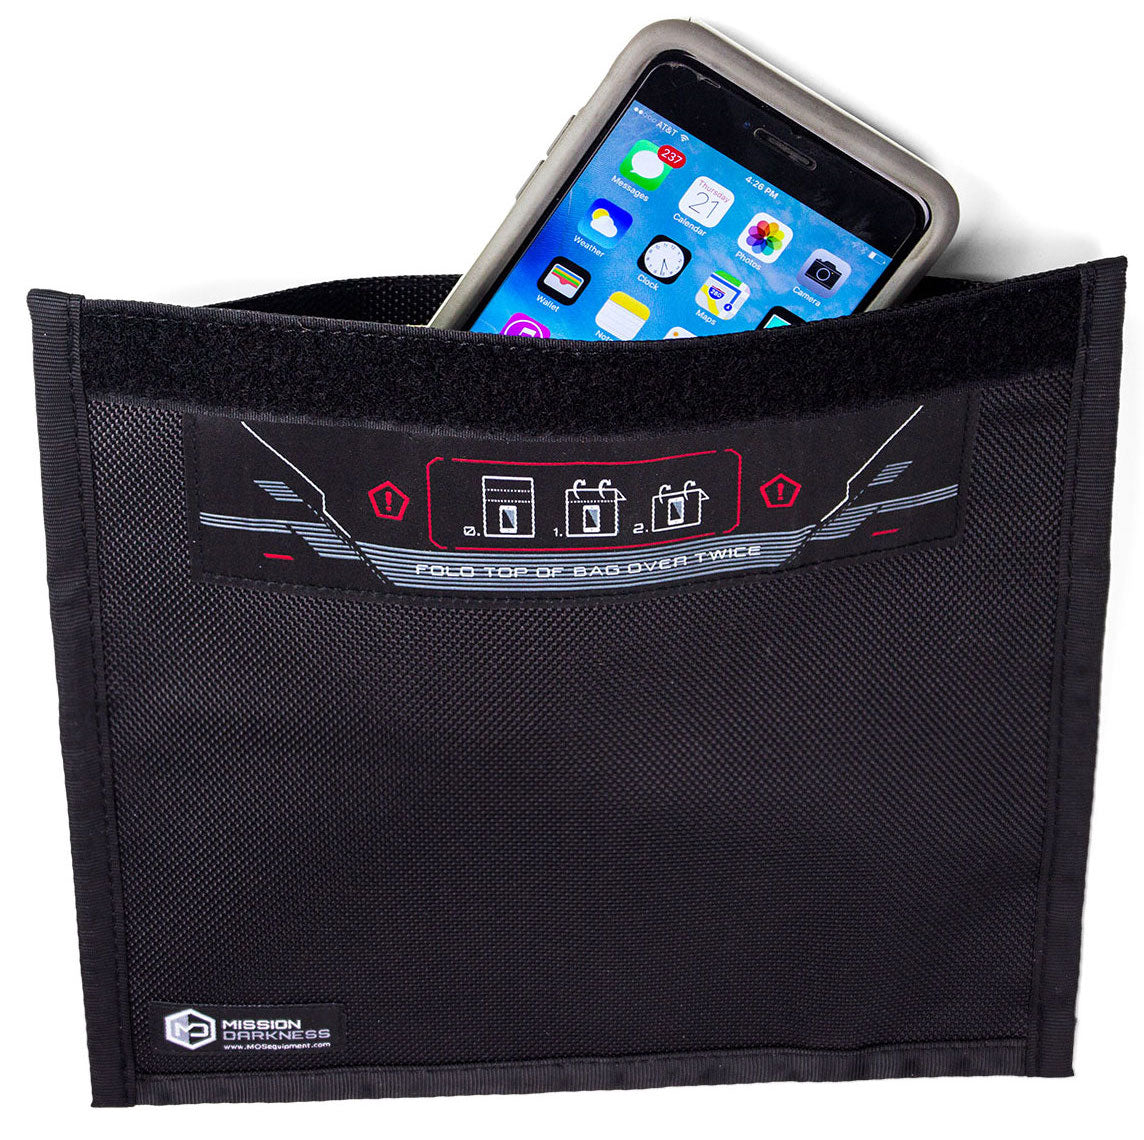 MISSION DARKNESS™ NON-WINDOW FARADAY BAG FOR PHONES